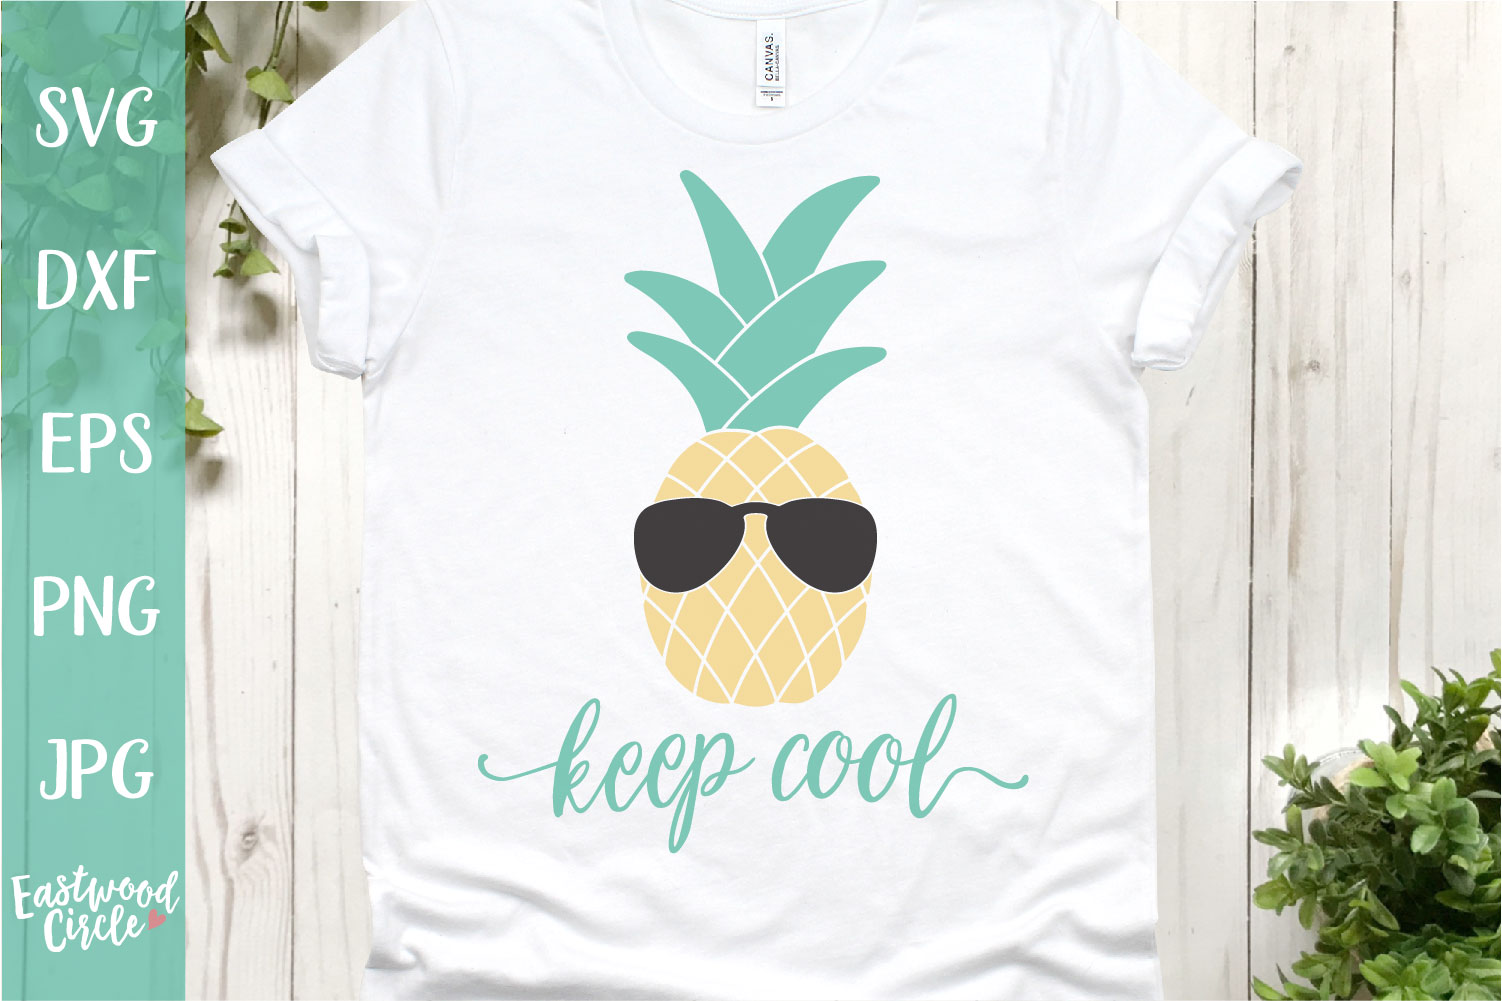 Keep Cool - A Summer SVG File for Crafters example image 1